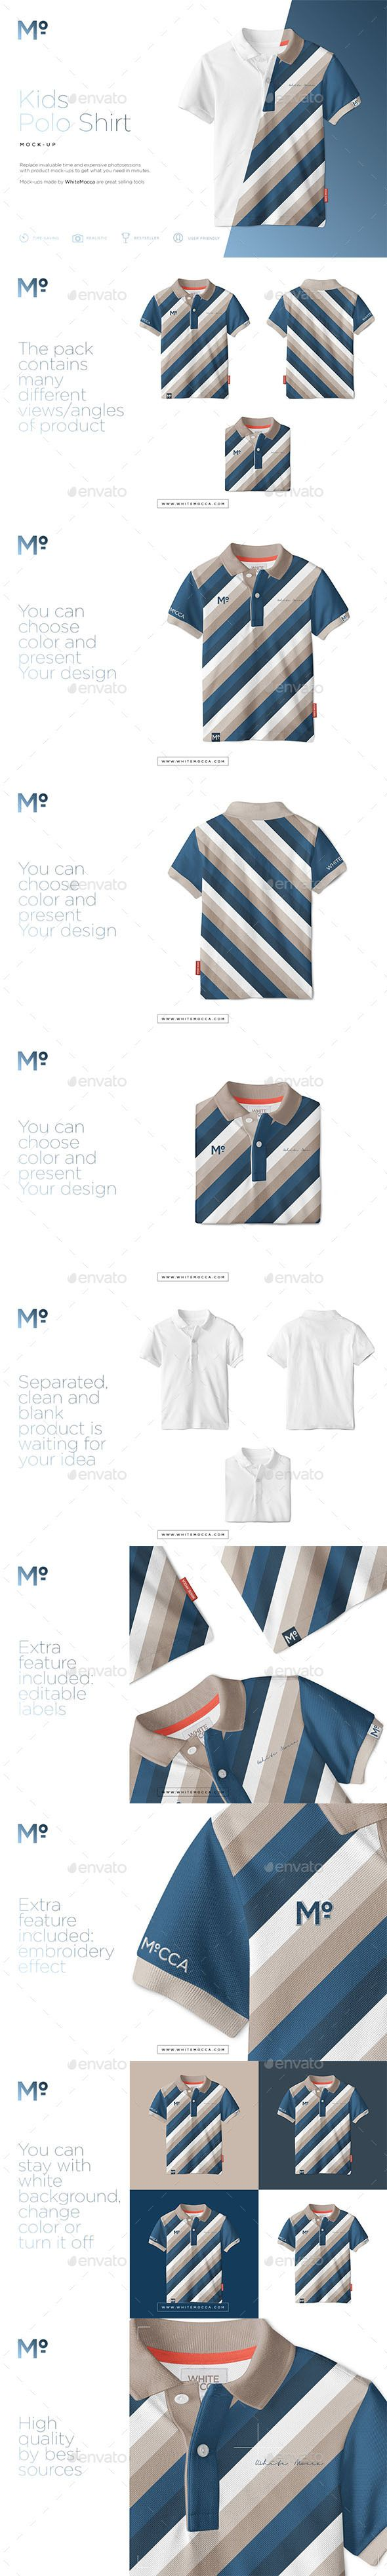 Kids Polo Shirt Mock-up - Apparel #Product #Mock-Ups Download here: https://graphicriver.net/item/kids-polo-shirt-mockup/19539426?ref=alena994